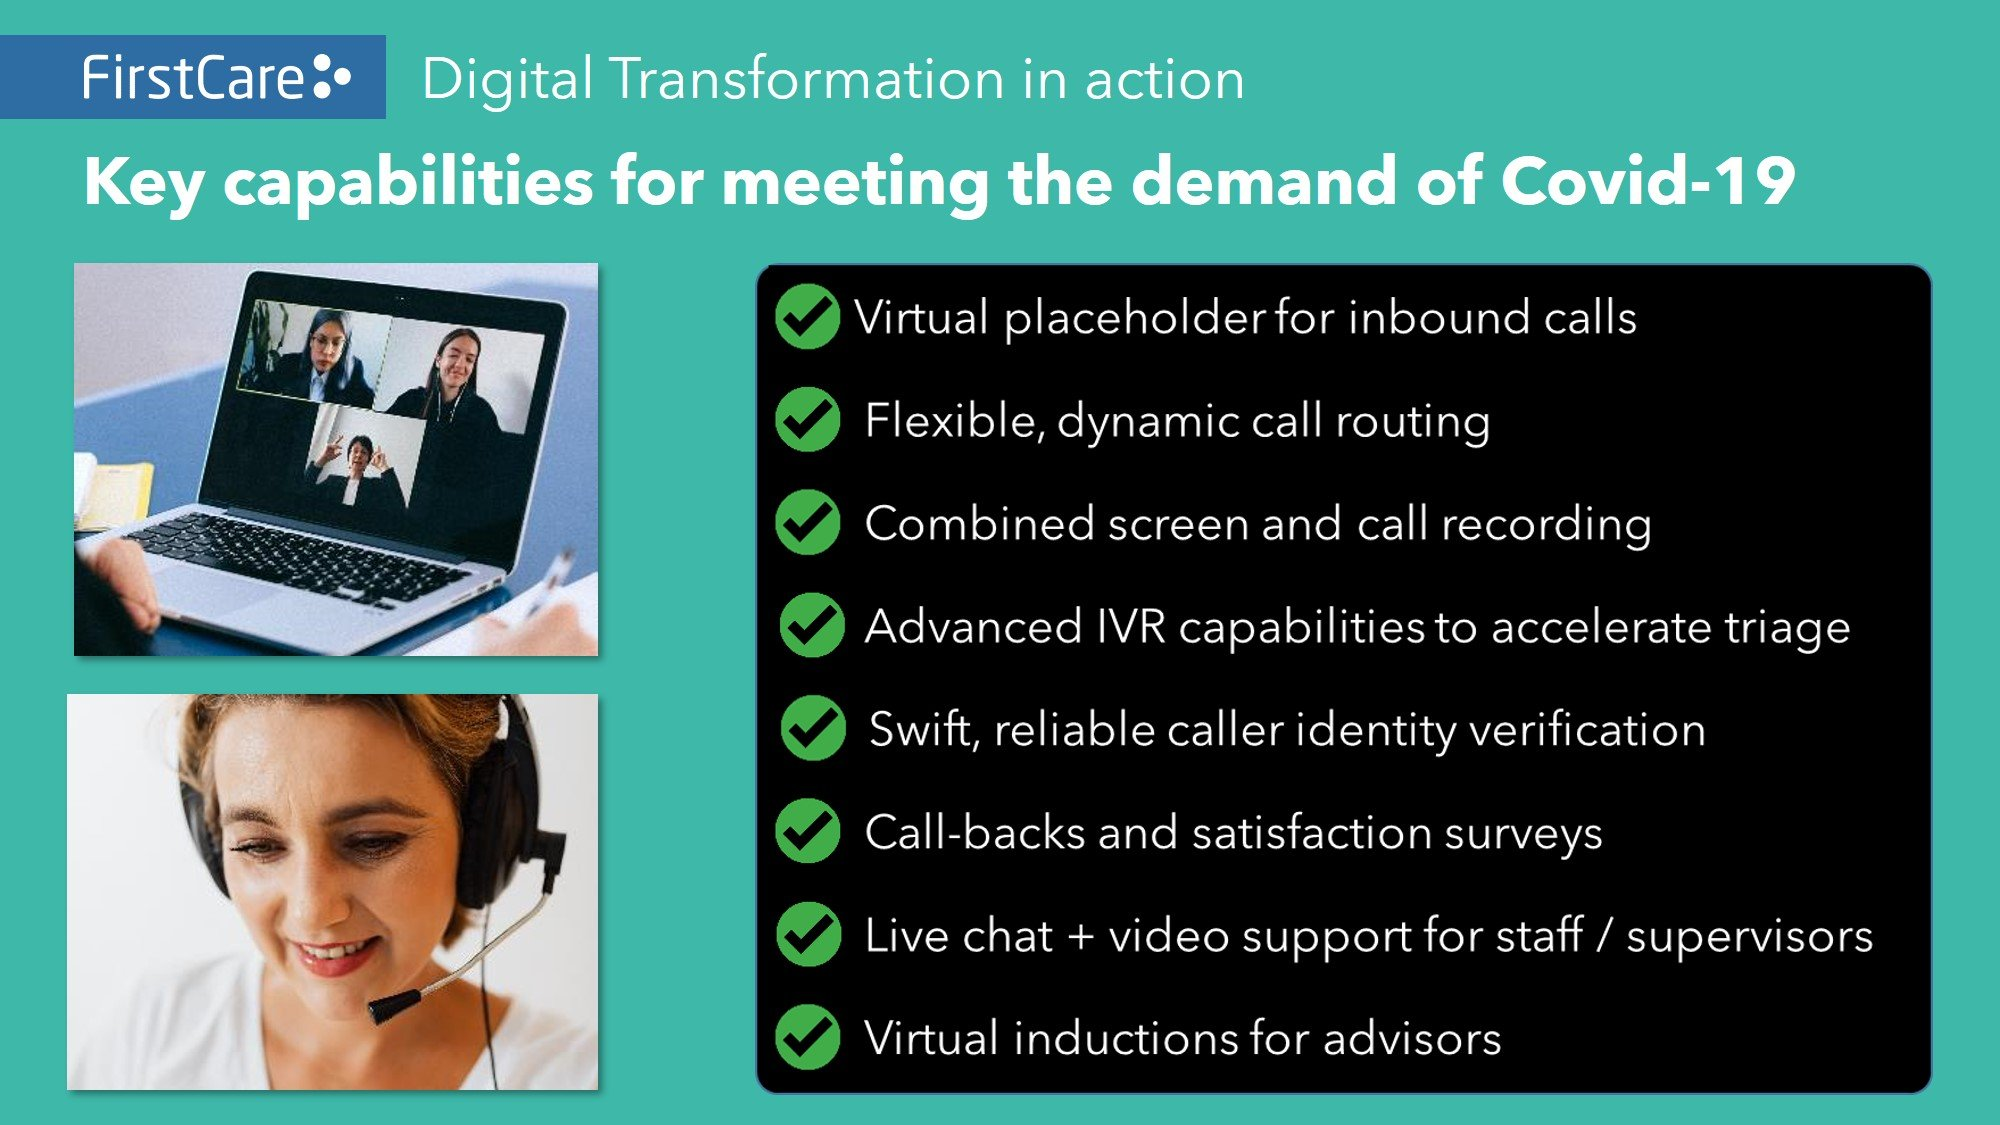 FirstCare Digital Transformation In Action